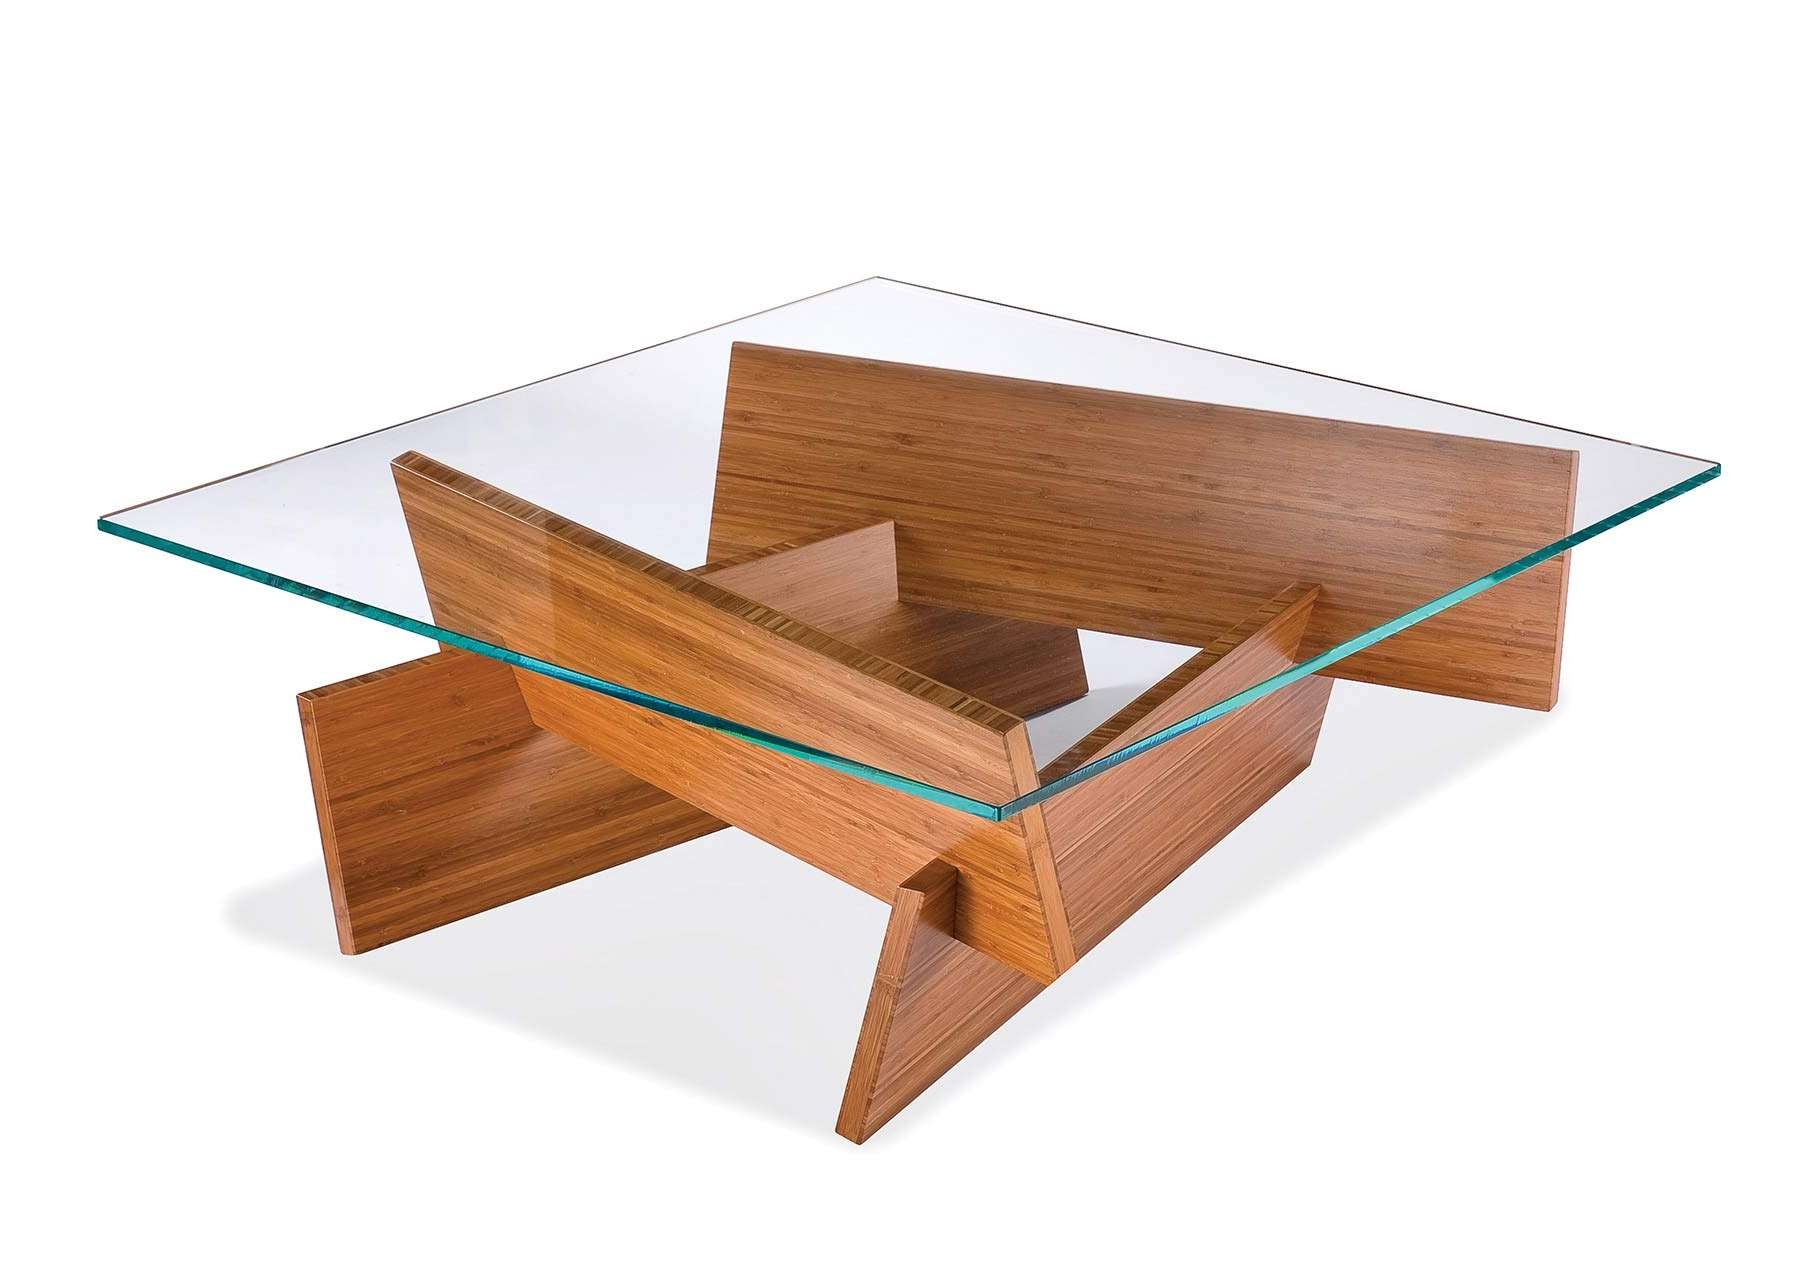 Famous Wooden And Glass Coffee Tables Regarding Glass Coffee Tables: Appealing Glass And Wood Coffee Tables Large (View 7 of 20)